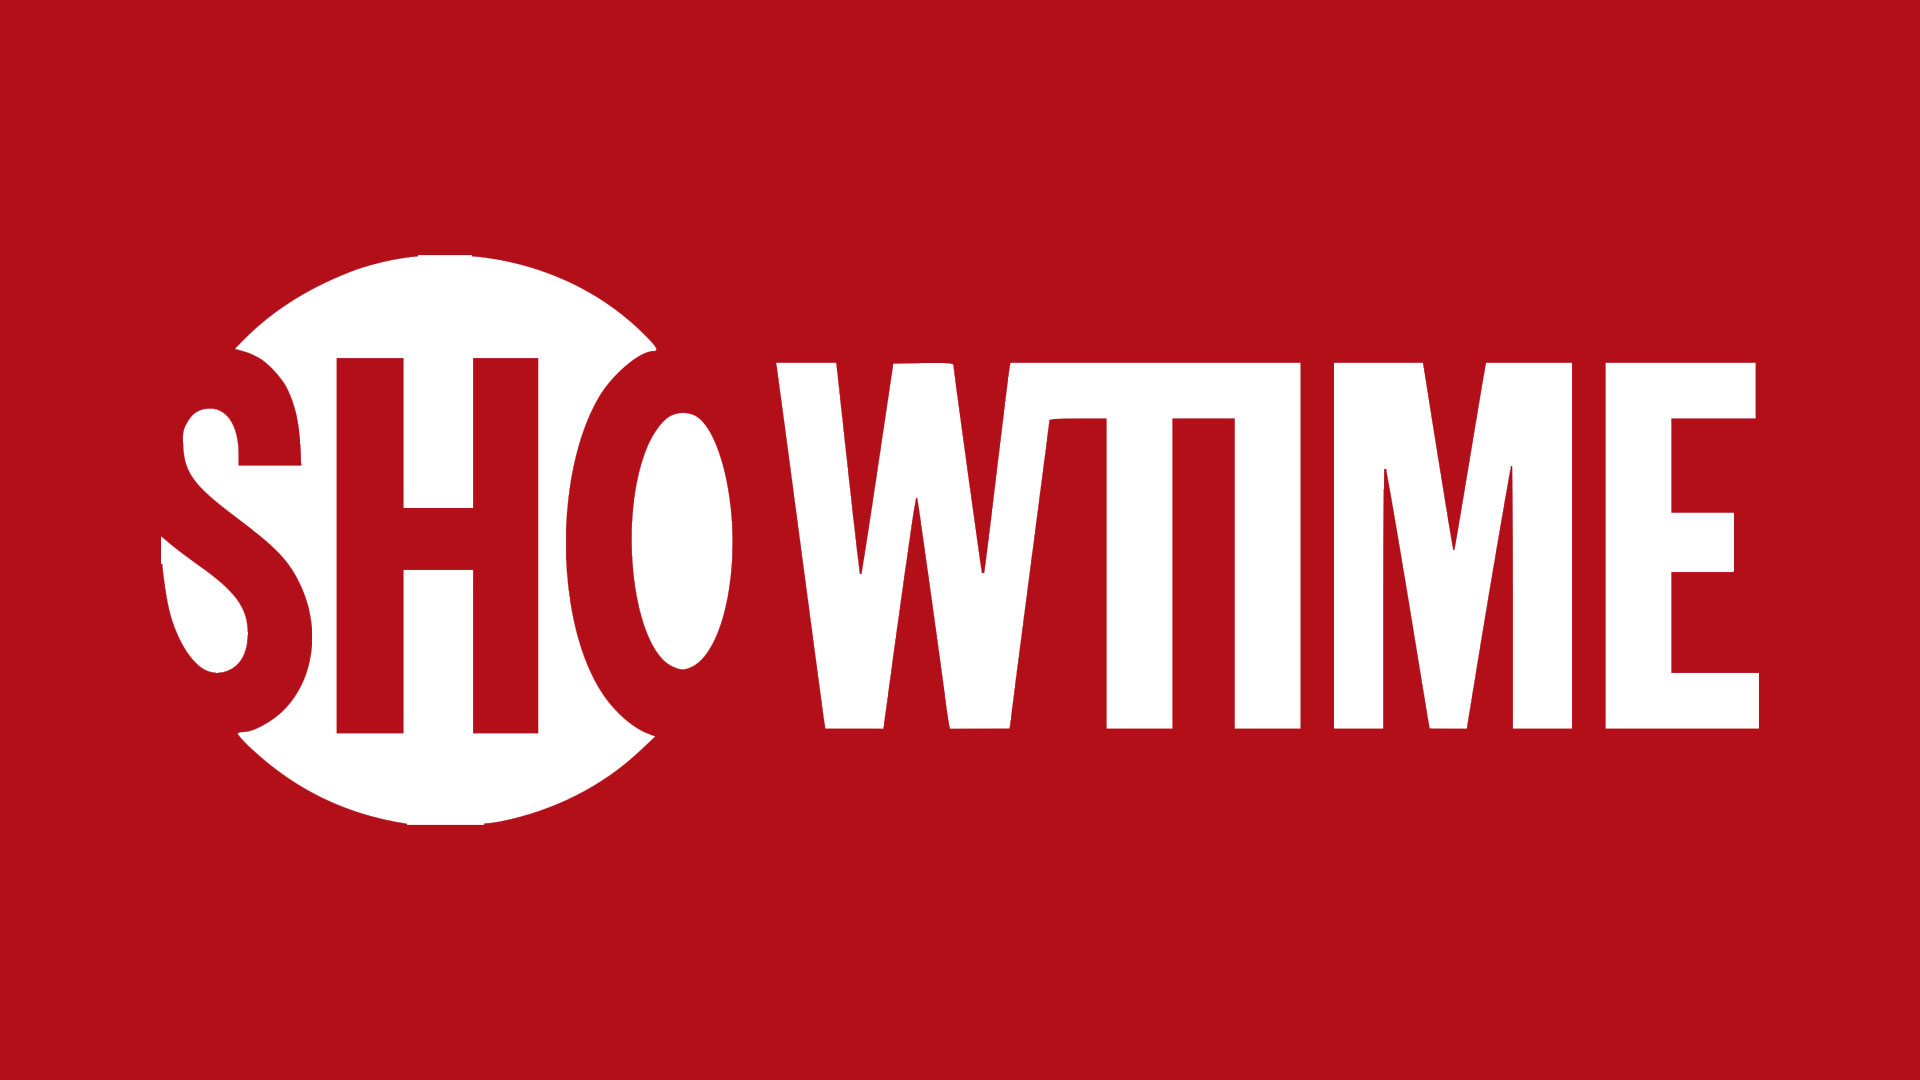 SHOWTIME official site featuring Homeland Billions Shameless Ray Donovan and other popular Original Series Schedule episode guides videos and more